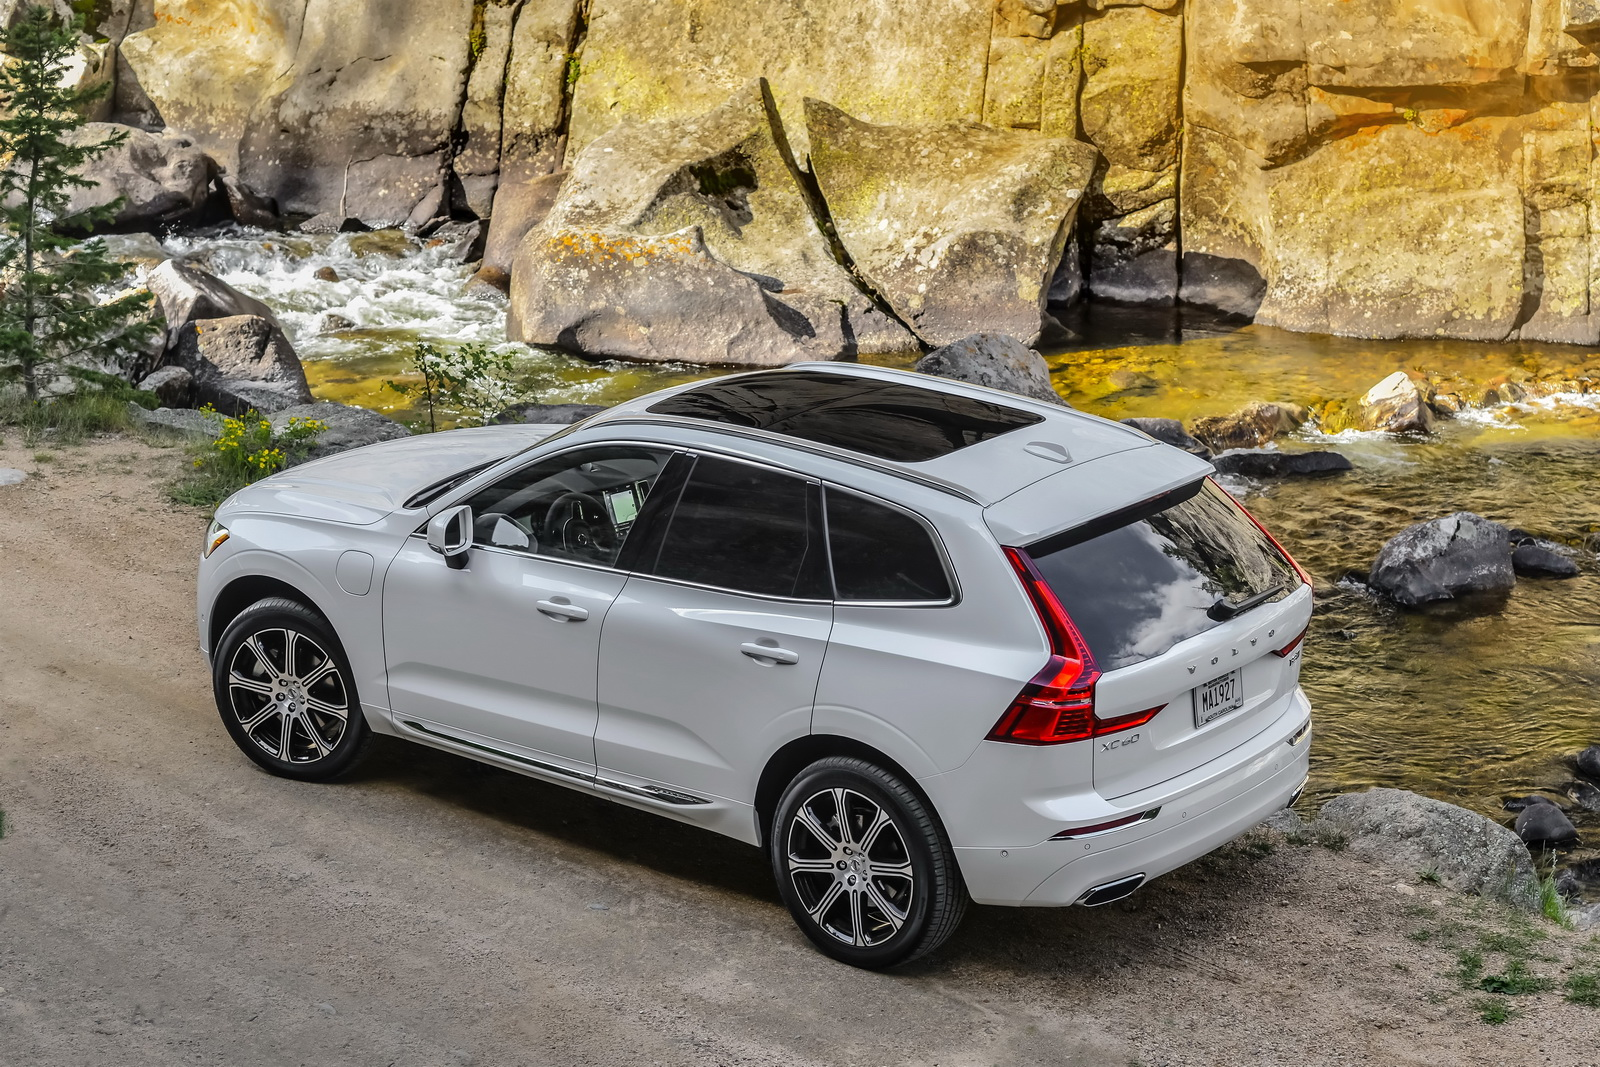 2018 Volvo XC60 - US UTILITY of the YEAR